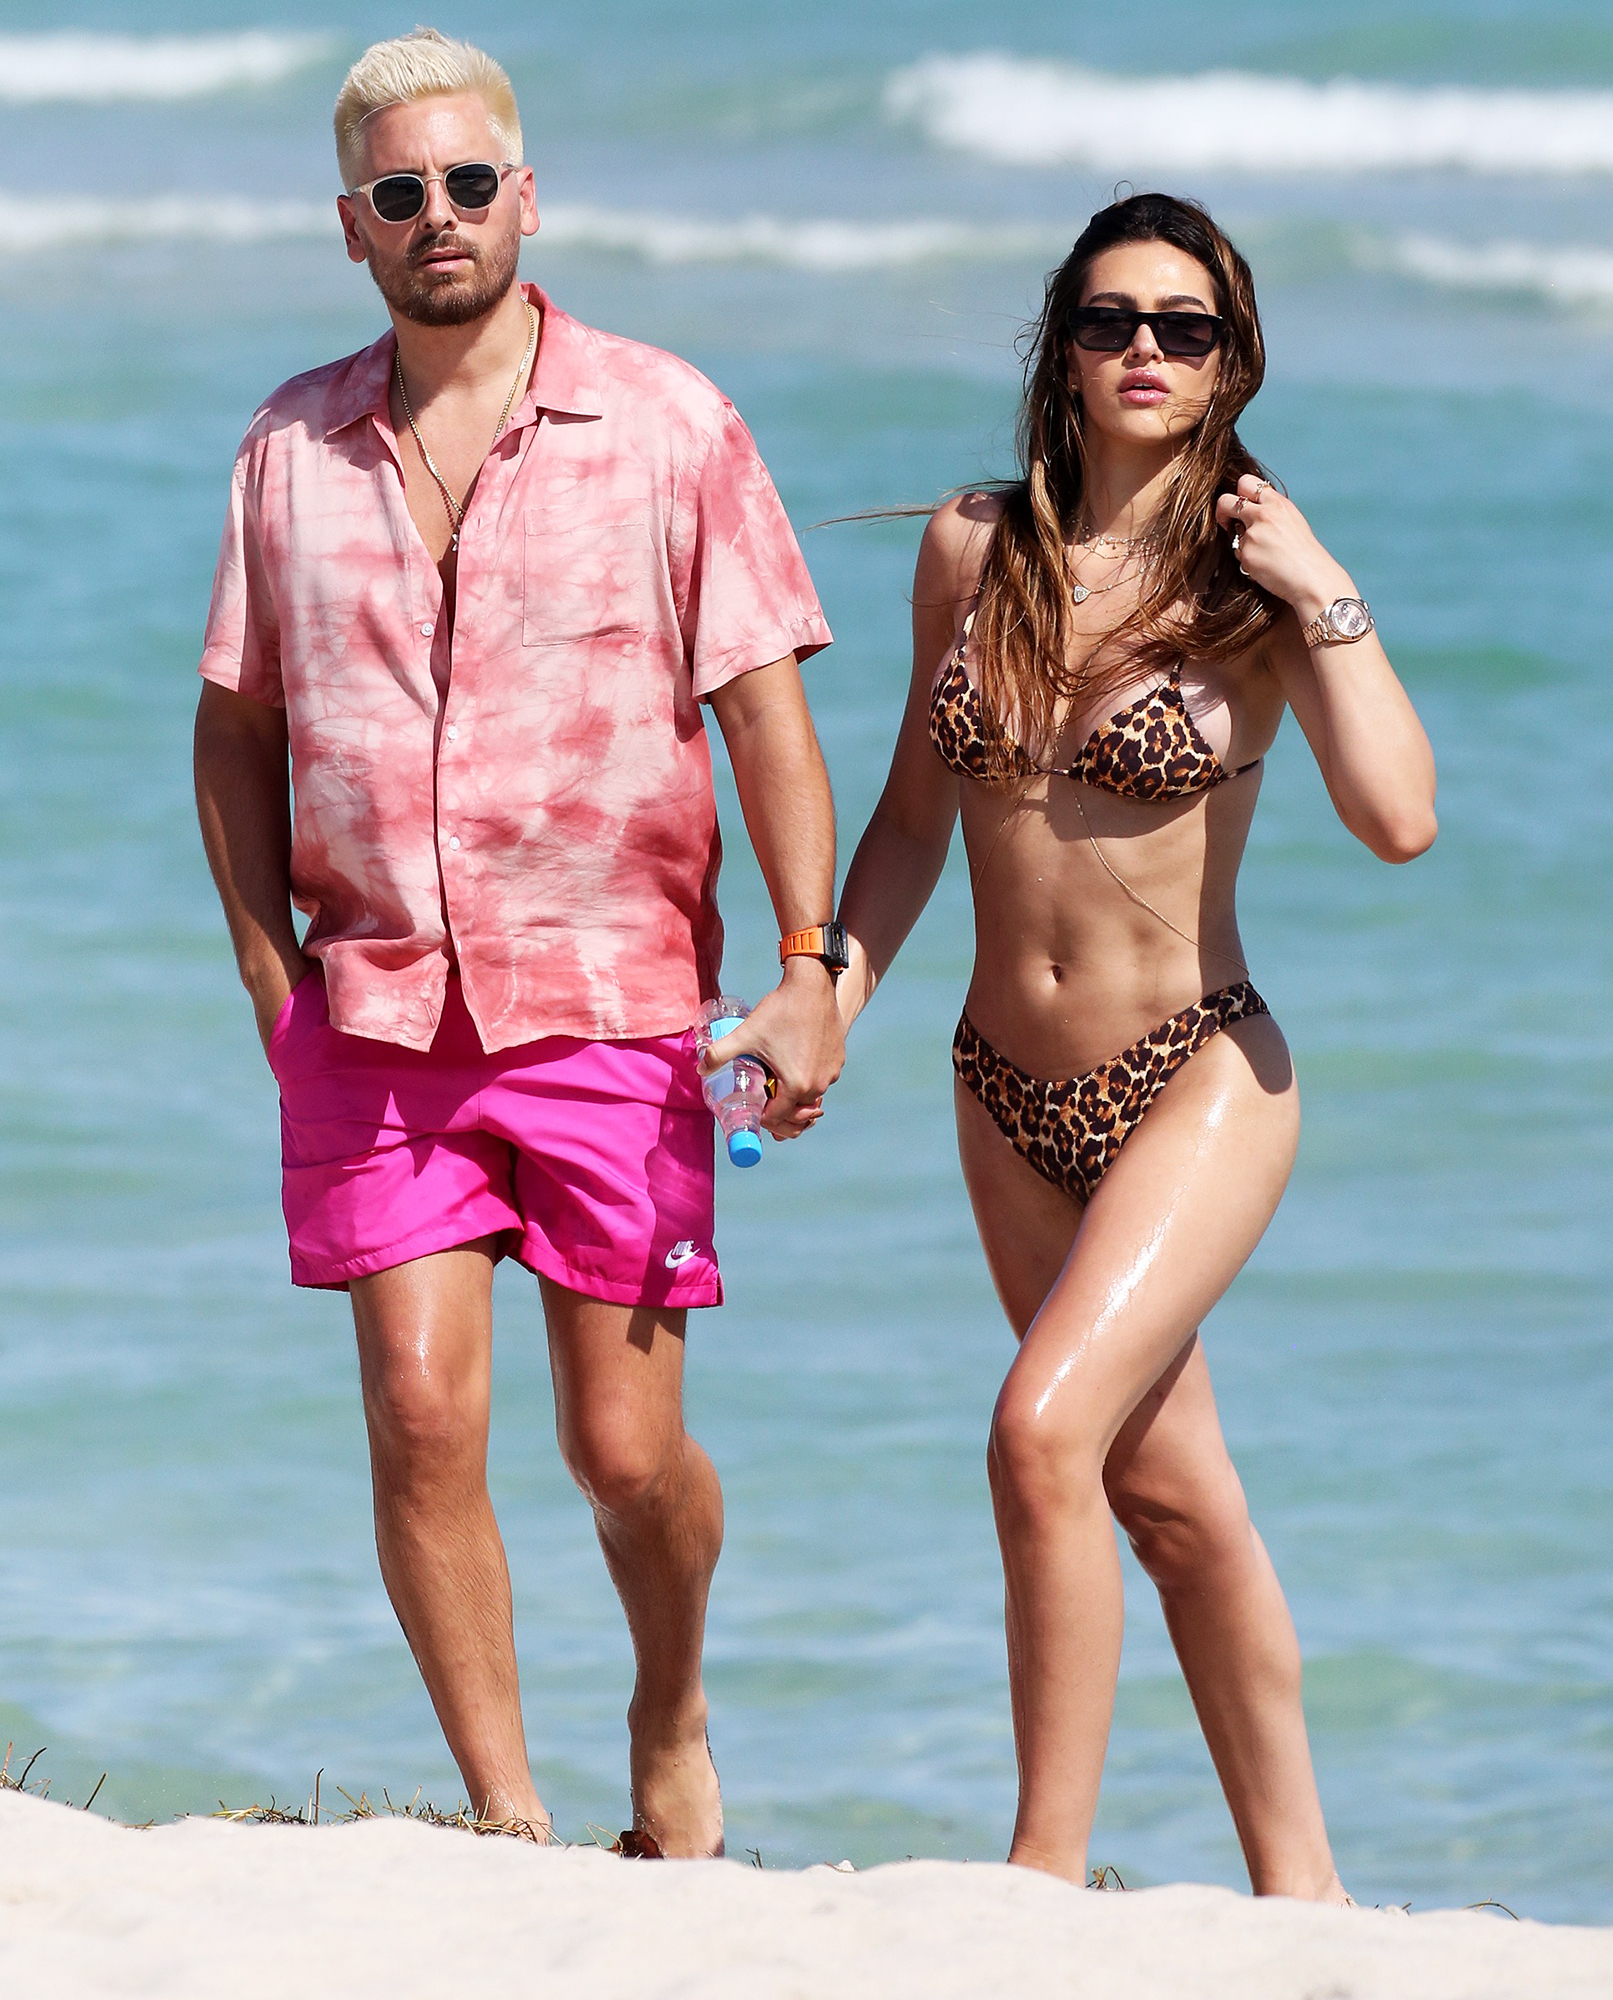 Amelia Hamlin Reacts to her Mom's Comments on her Relationship with Scott Disick